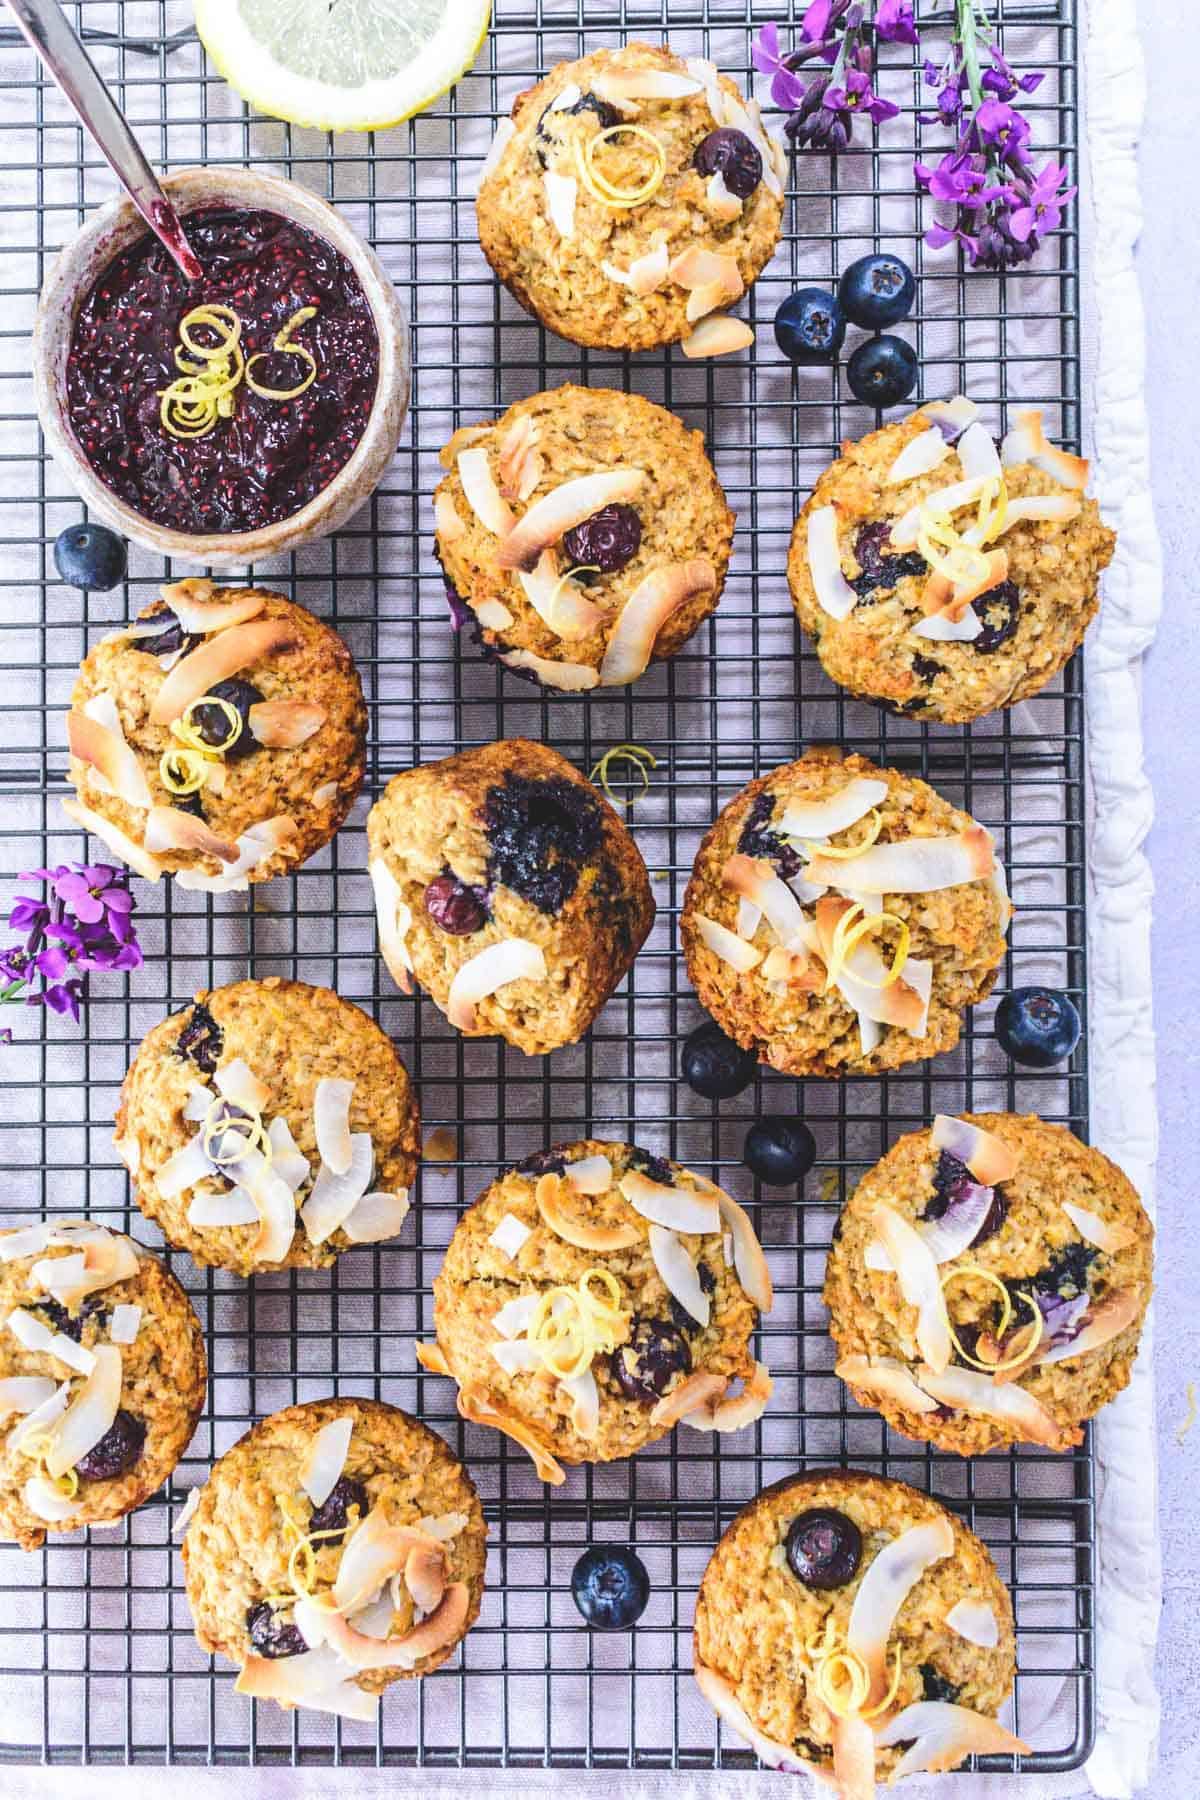 Coconut Blueberry Wholemeal Muffins arranged on a cooling rack